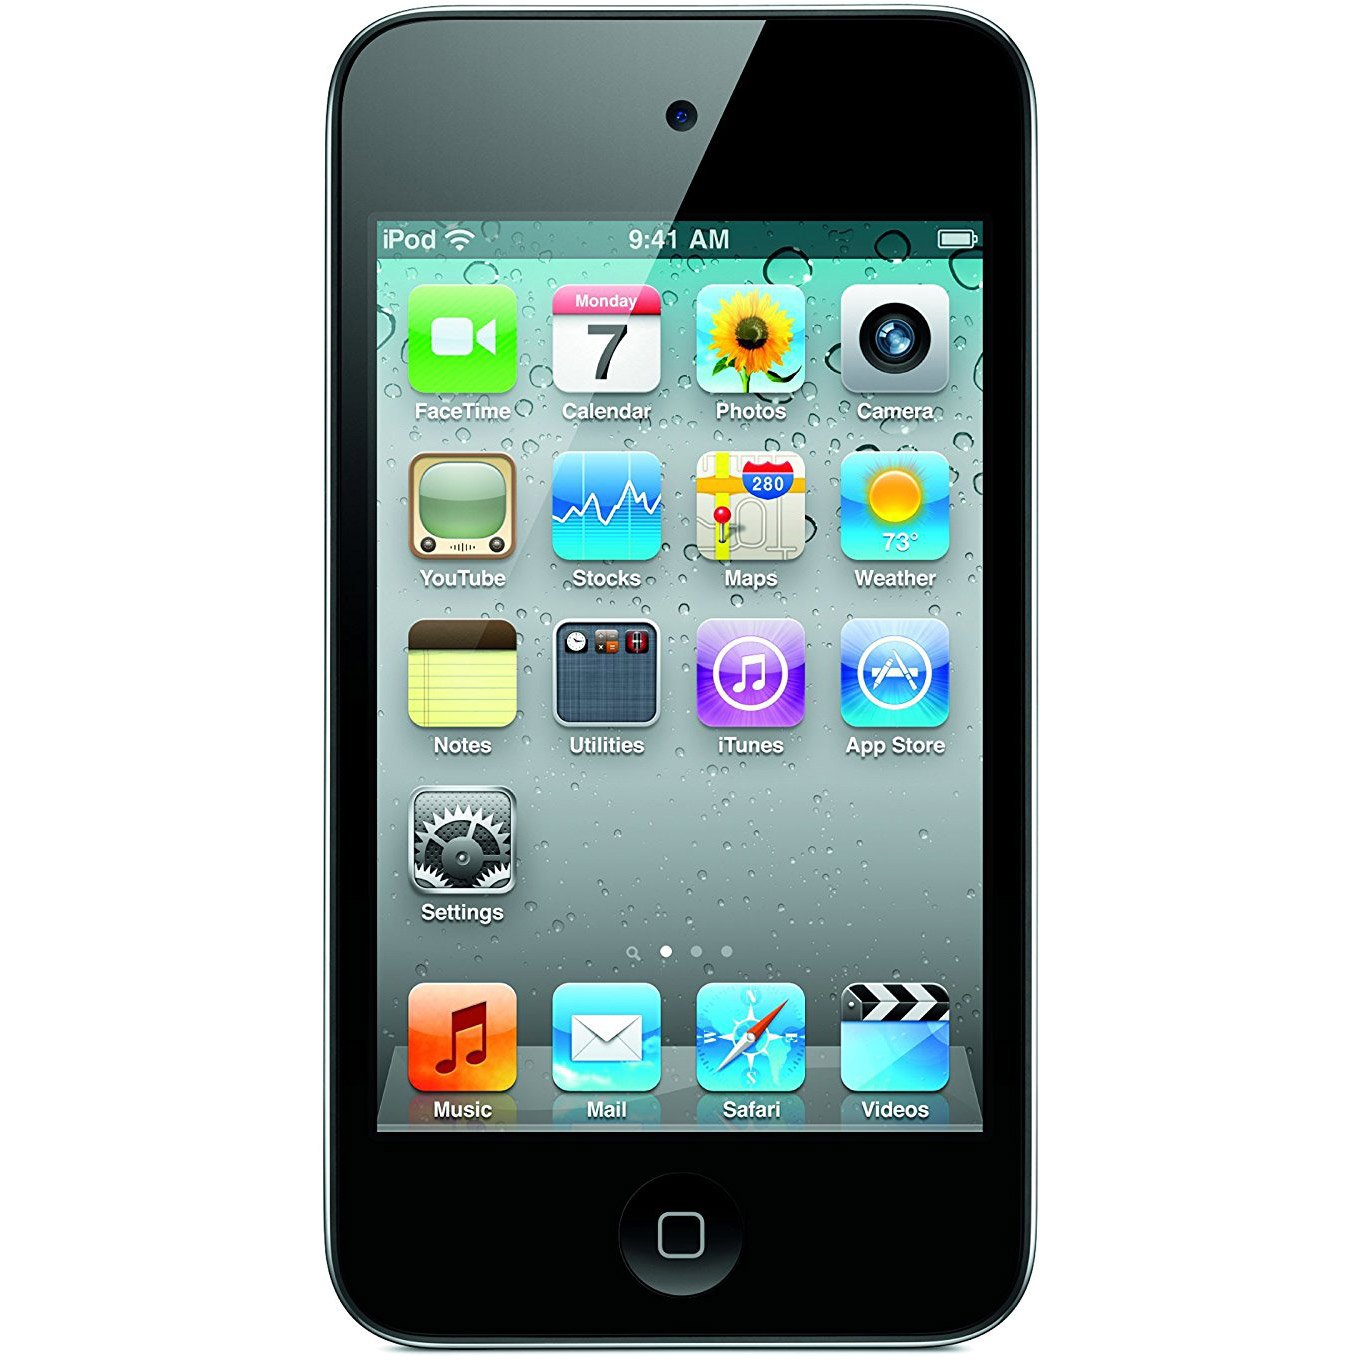 Amazon.com: Apple iPod touch 16GB Black (4th Generation) (Discontinued by  Manufacturer): Home Audio & Theater